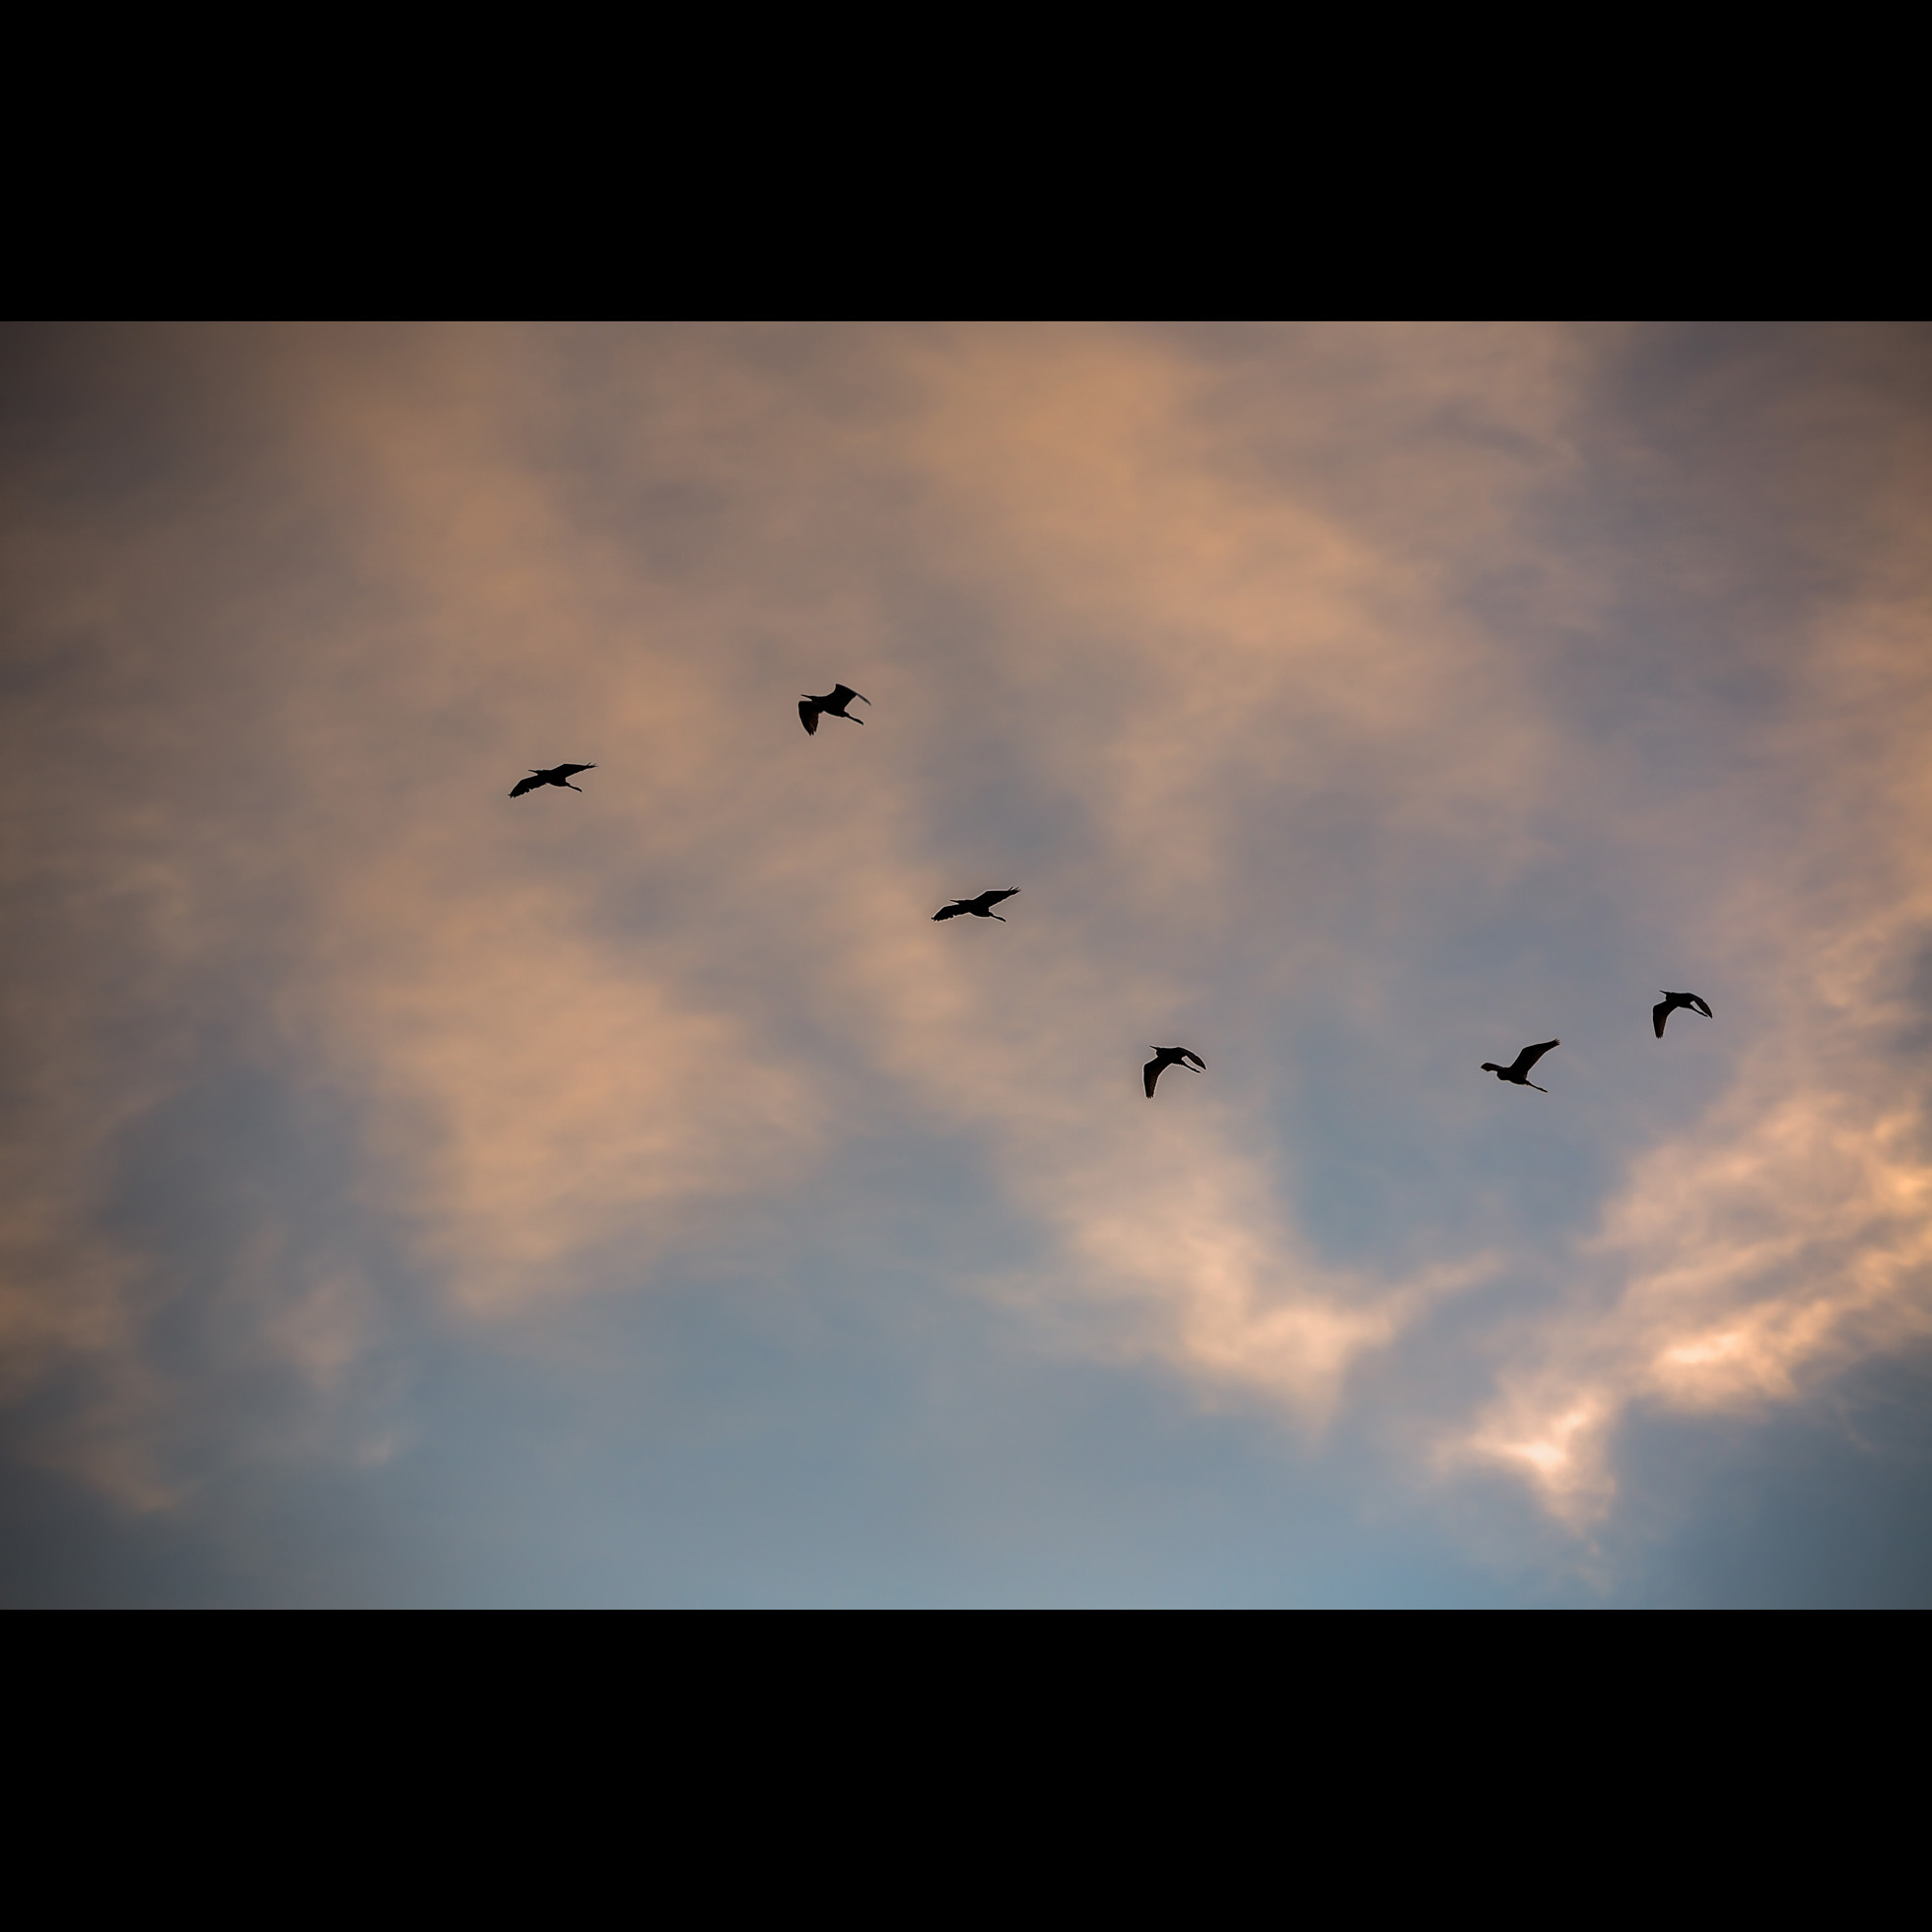 10.7 EGRETS ON THE WING